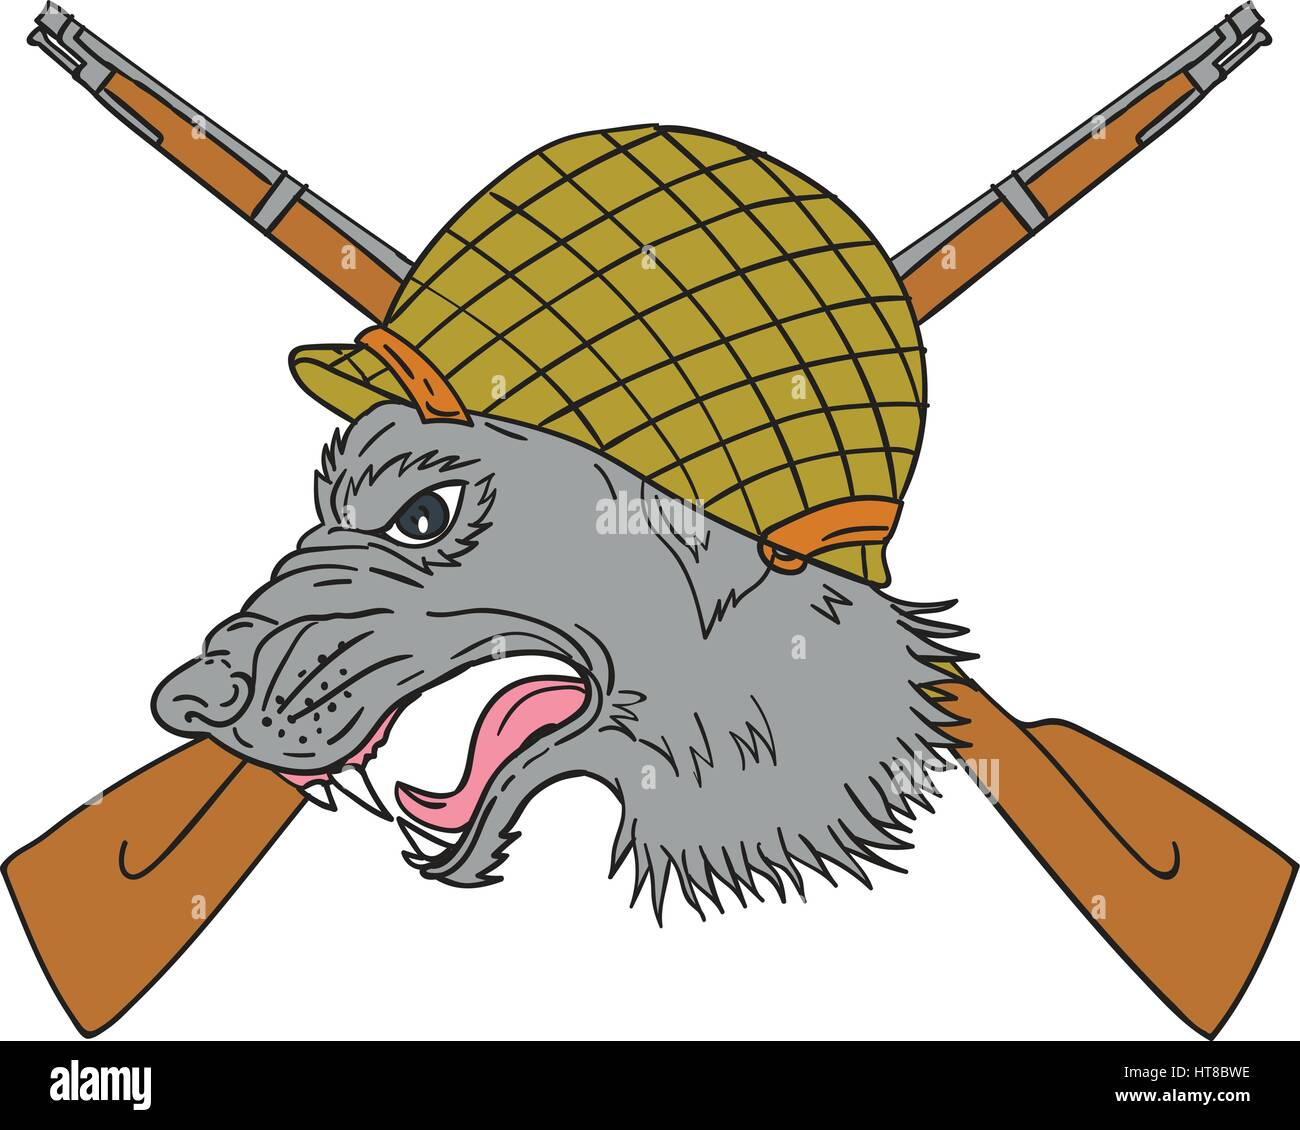 Drawing sketch style illustration of a grey wolf head wearing world war two helmet with crossed rifles in the background - Stock Vector